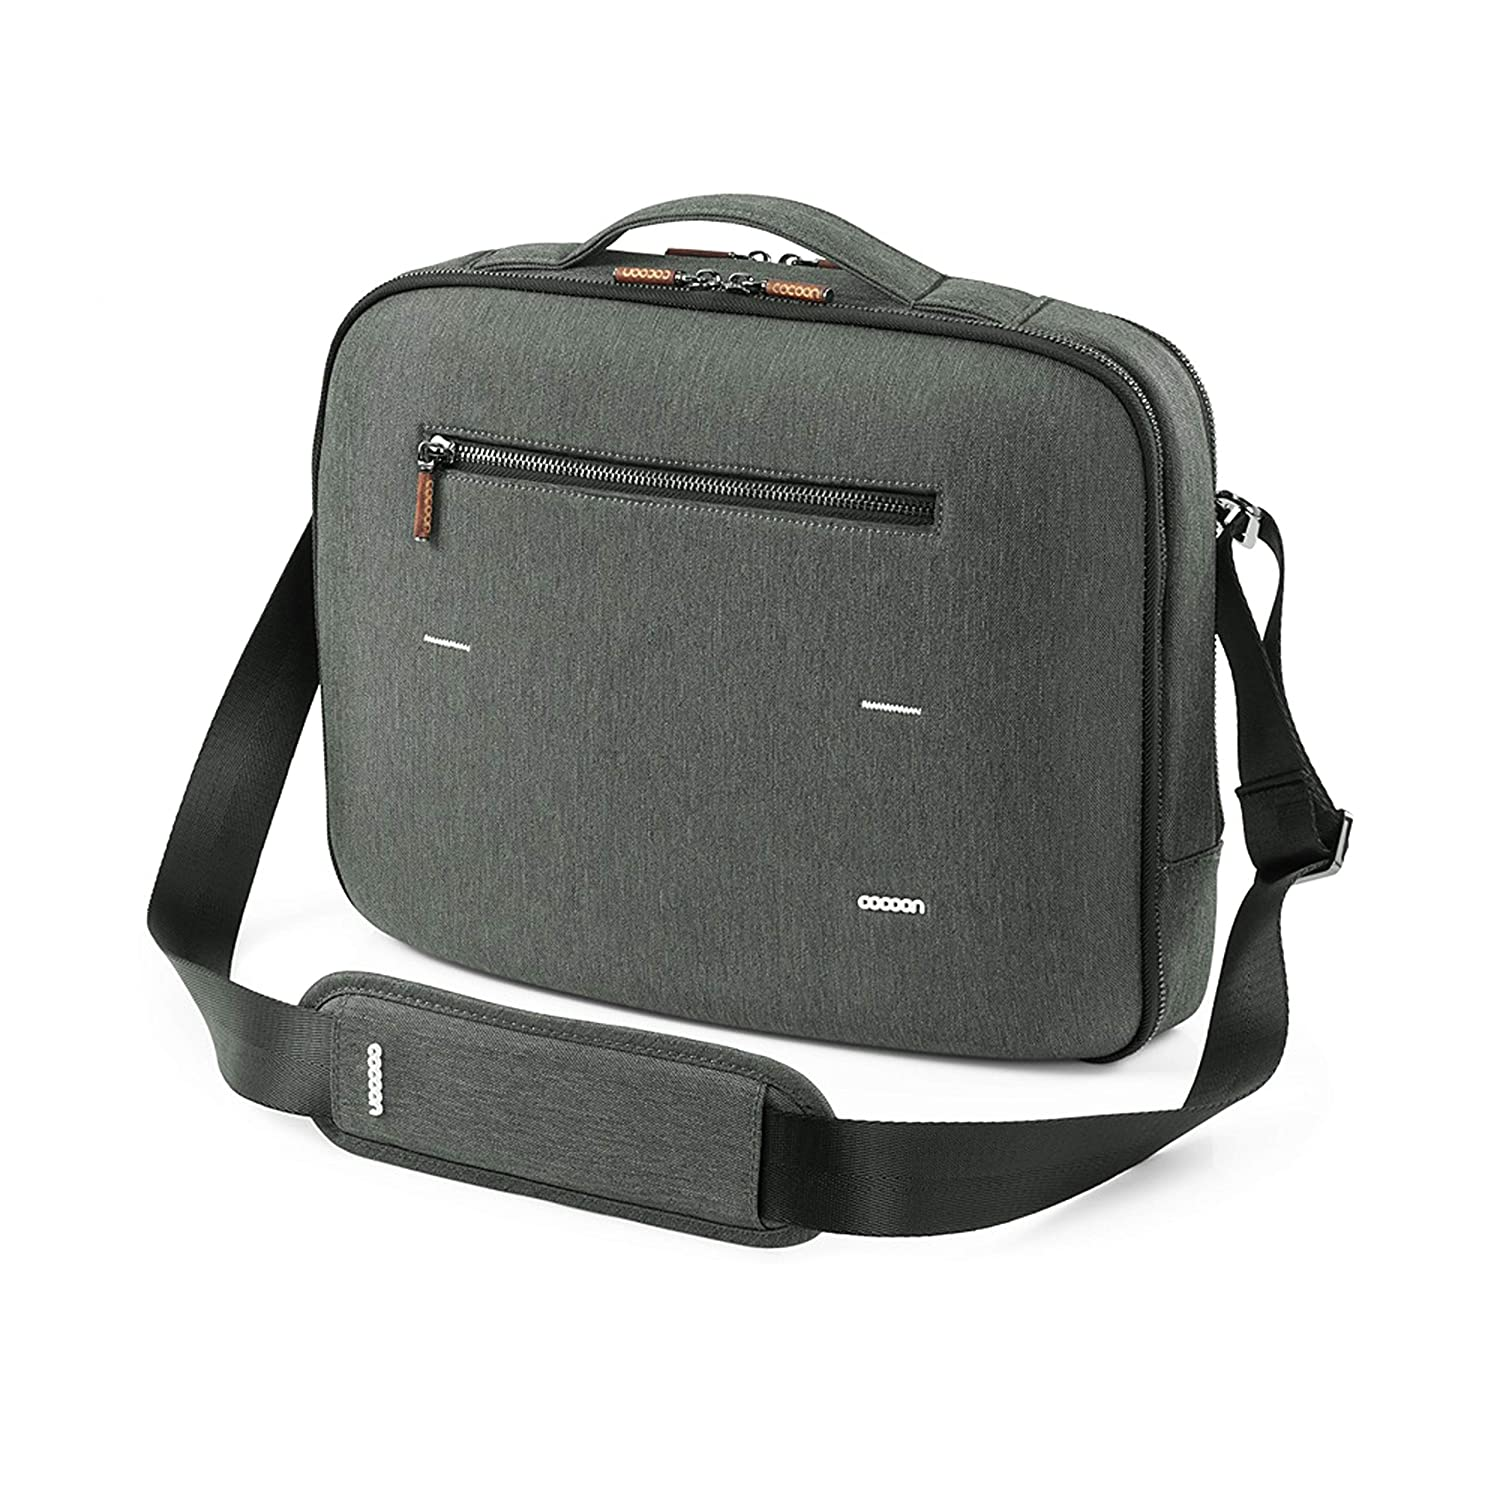 Cocoon Innovations Accessory Organizer Graphite Gray Cocoon MCP3202GF Graphite 13 Brief with Built-in Grid-IT